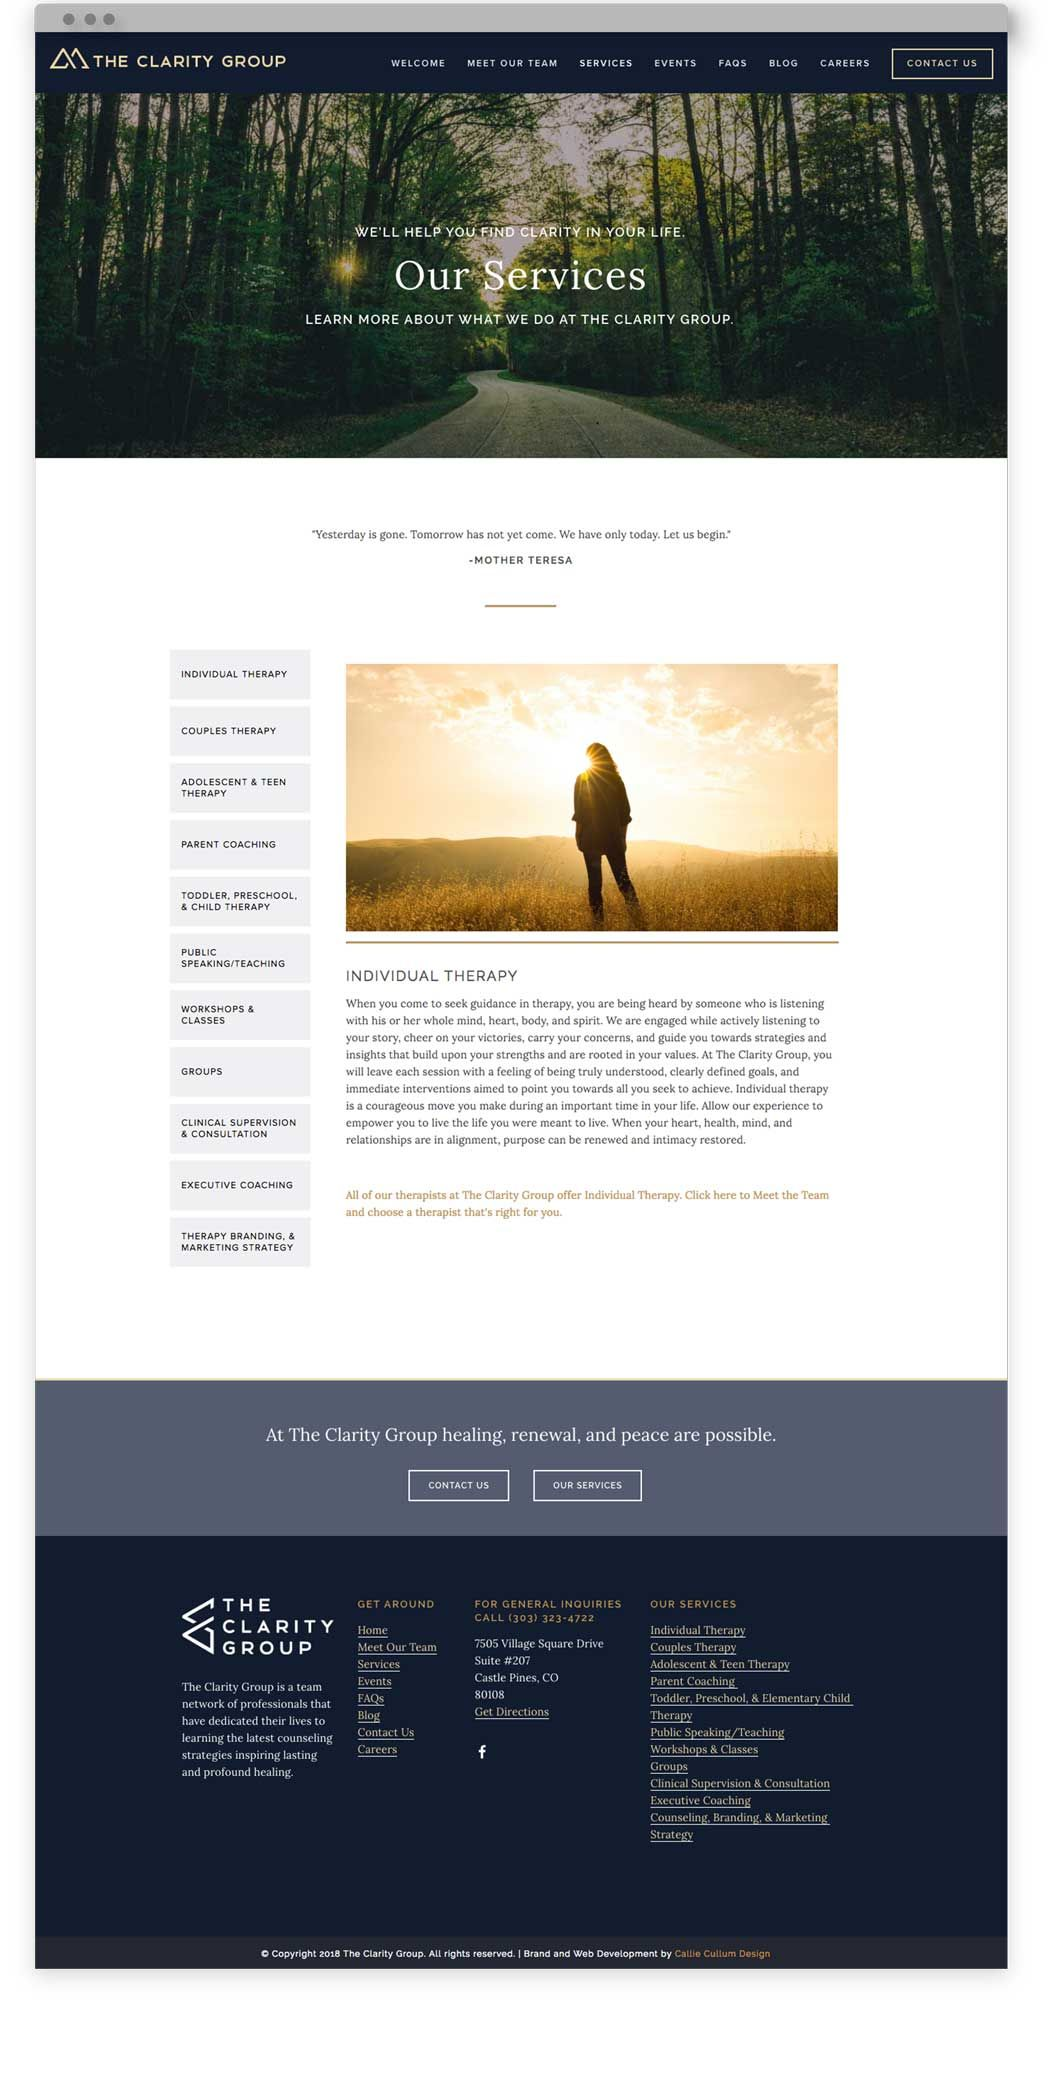 Website Design For The Clarity Group A Therapy Practice Based Outside Of Denver Colorado The Des Therapy Website Design Website Design Custom Website Design